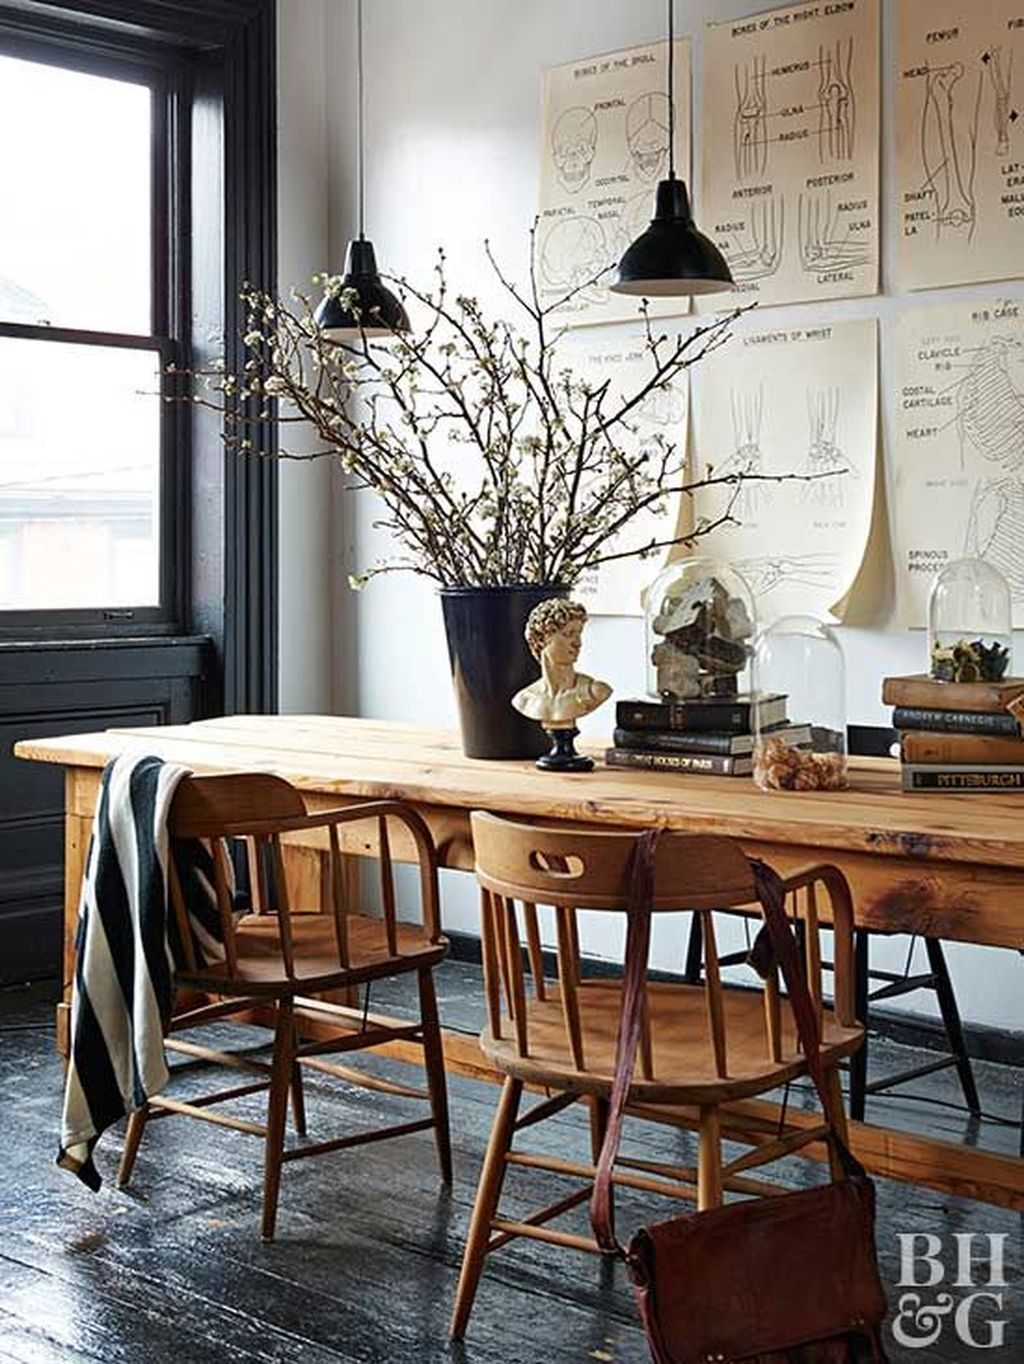 40 Creative Wooden Dining Tables Design Ideas Wooden Dining Tables Dining Table With Bench Dining Table